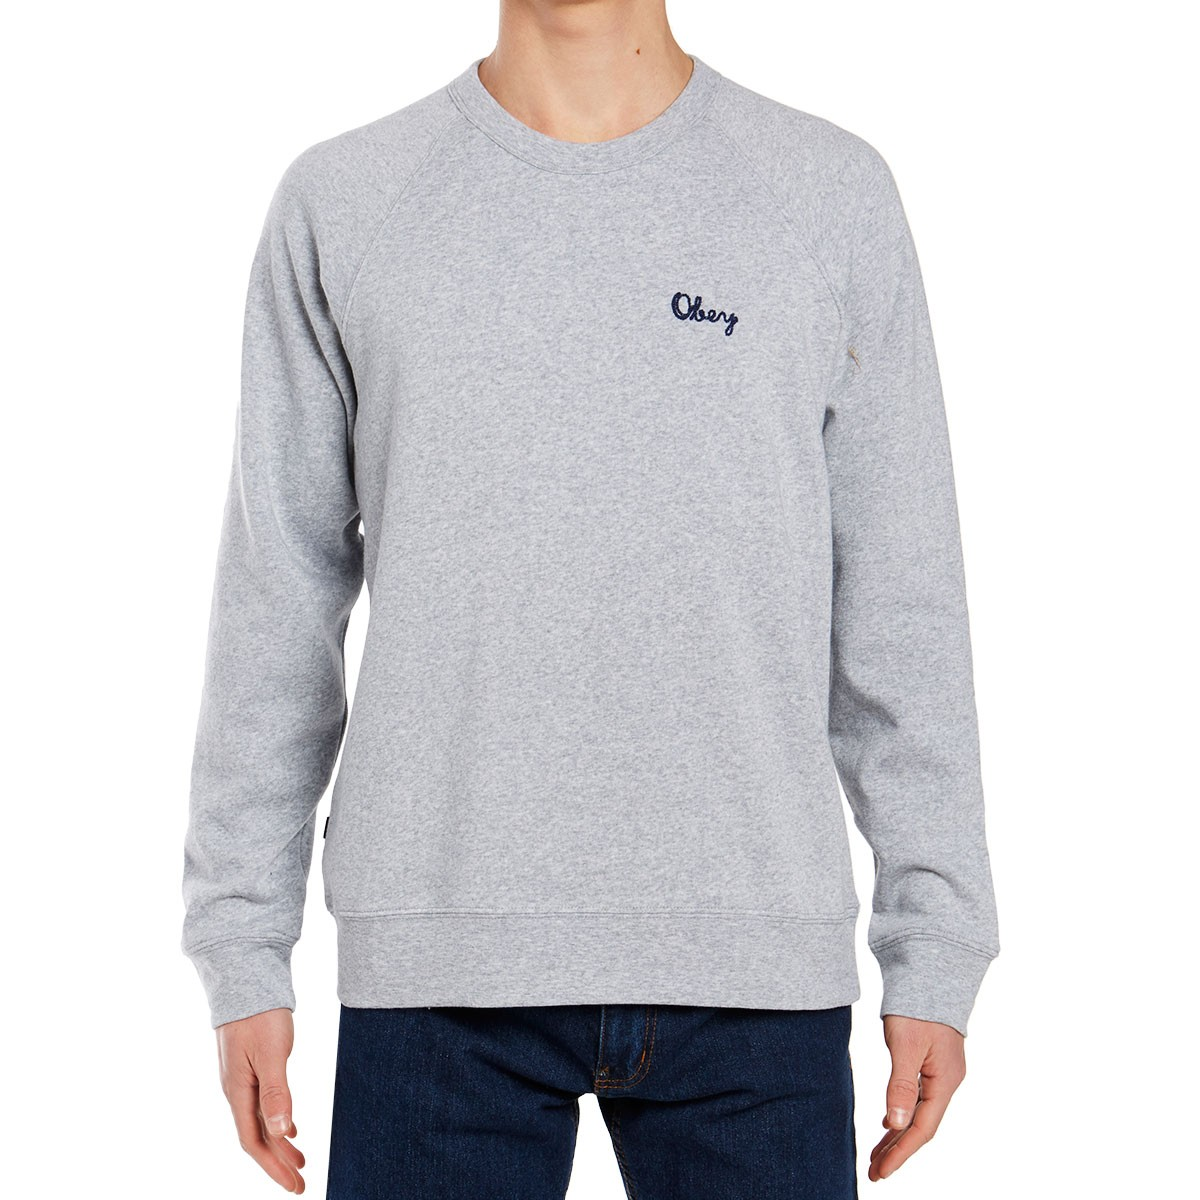 b6d223daf587 Obey Lofty Chain Stitch Crew Sweatshirt - Athletic Heather Grey